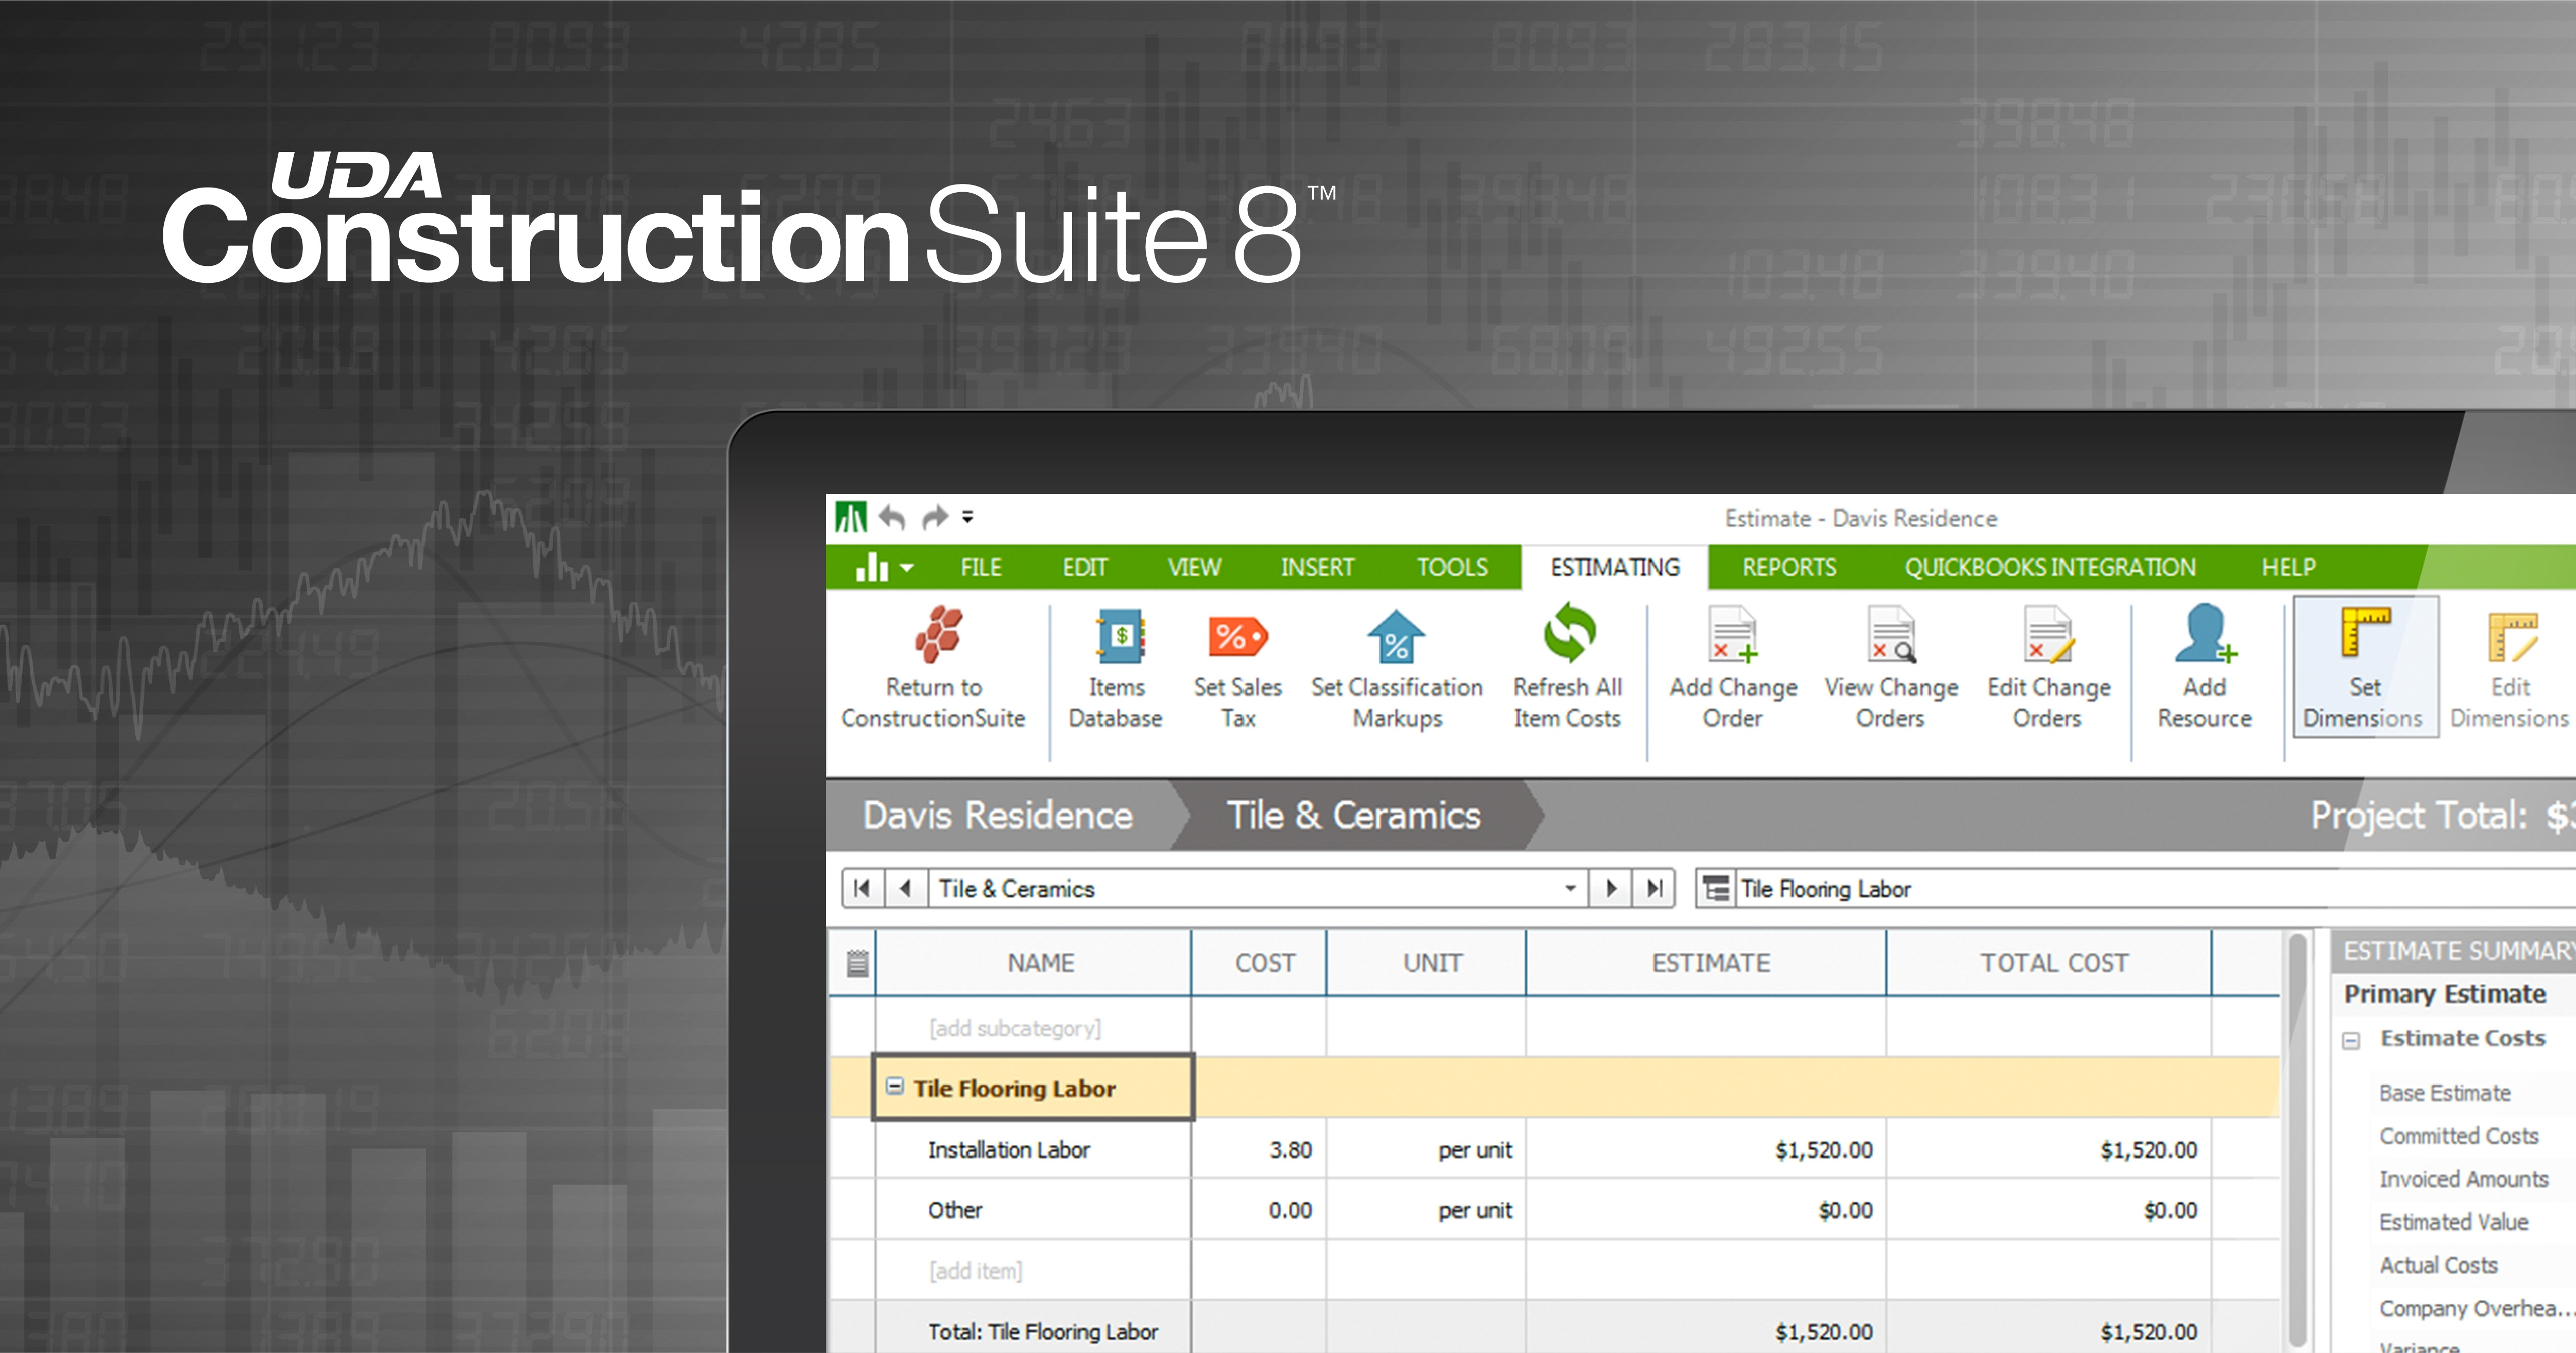 UDA Technologies Provides Latest Cost Data in ConstructionSuite 8